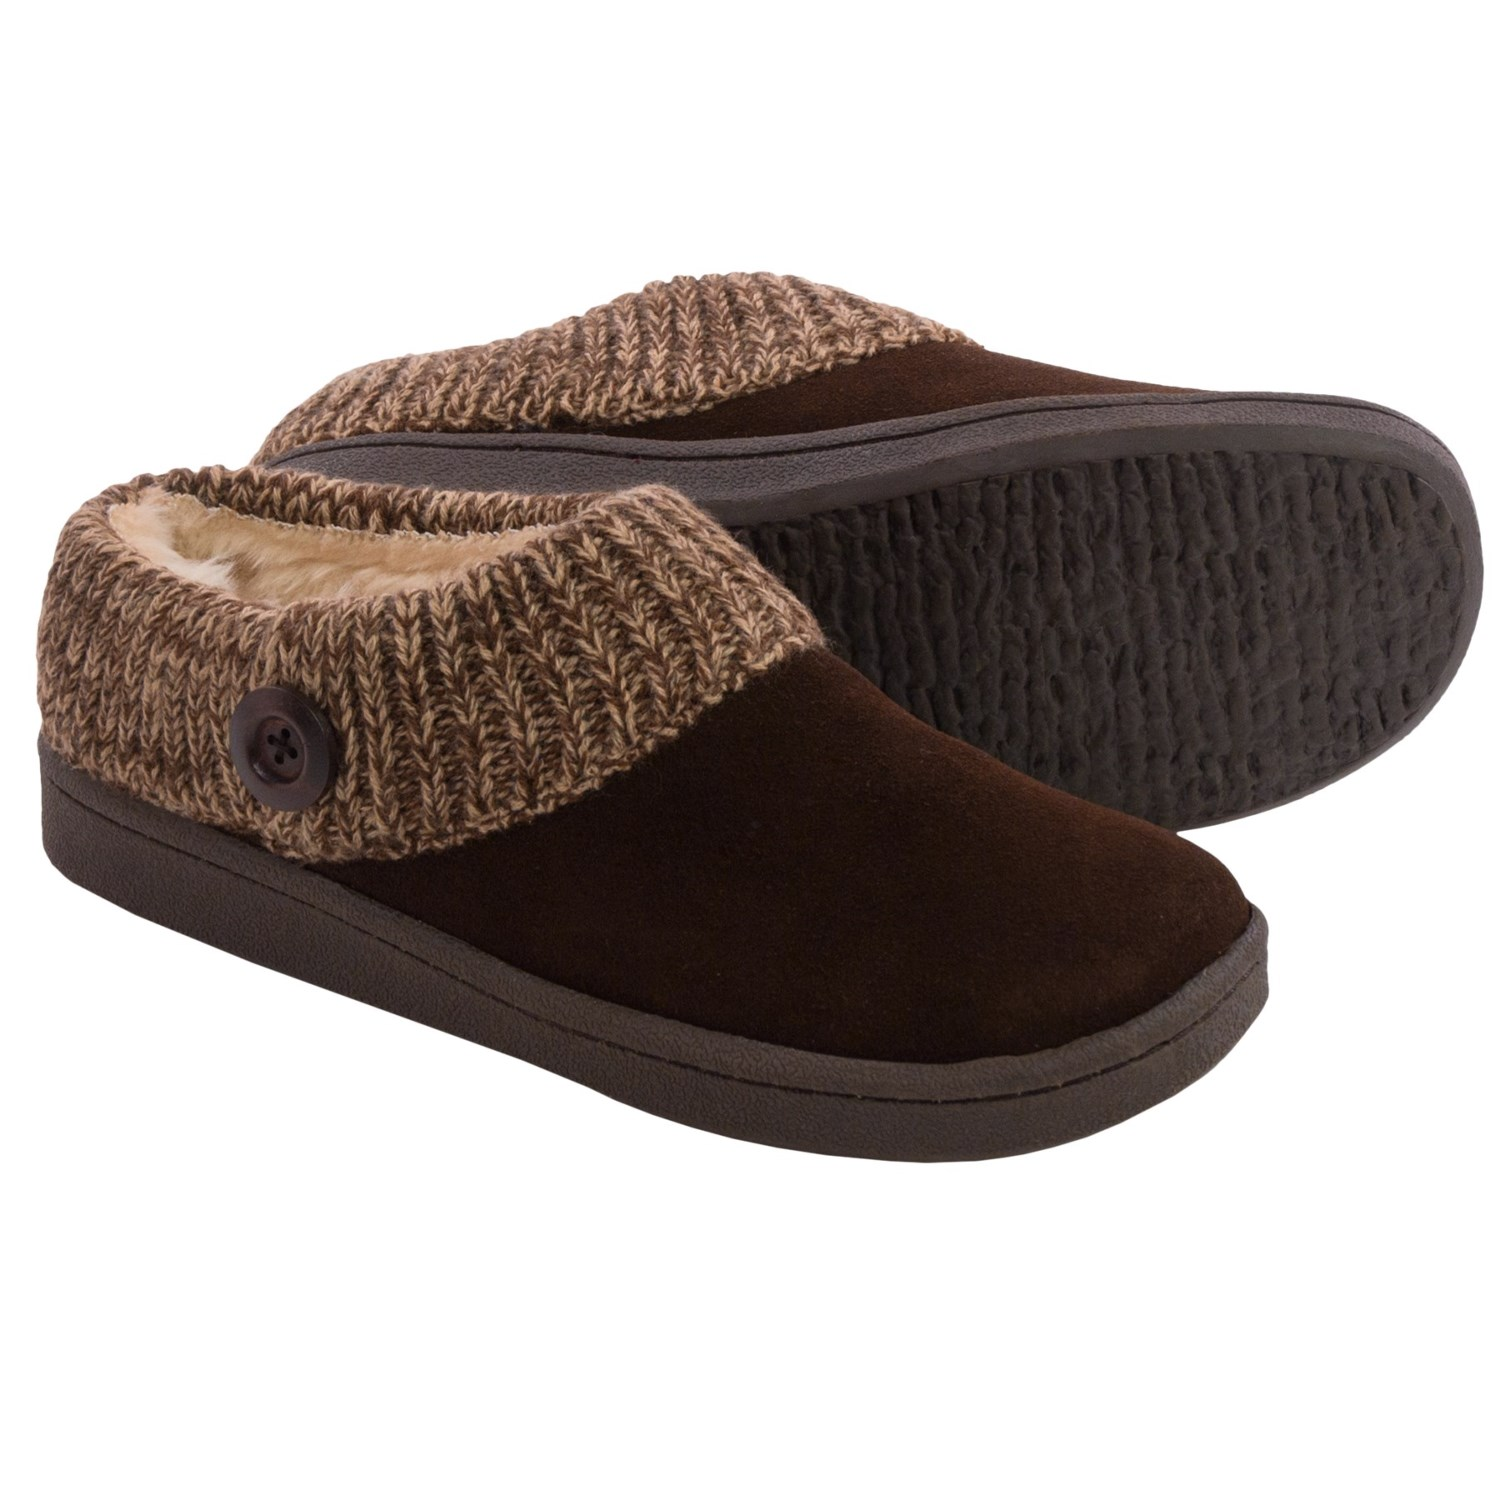 Ideal for on-the-go days, these lightweight Clarks CLOUDSTEPPERS sneakers keep you feeling comfy and looking stylish. Whether you're strolling down the boardwalk in July, wandering through a pumpkin patch in October, or running errands in February, this year-round shoe is .